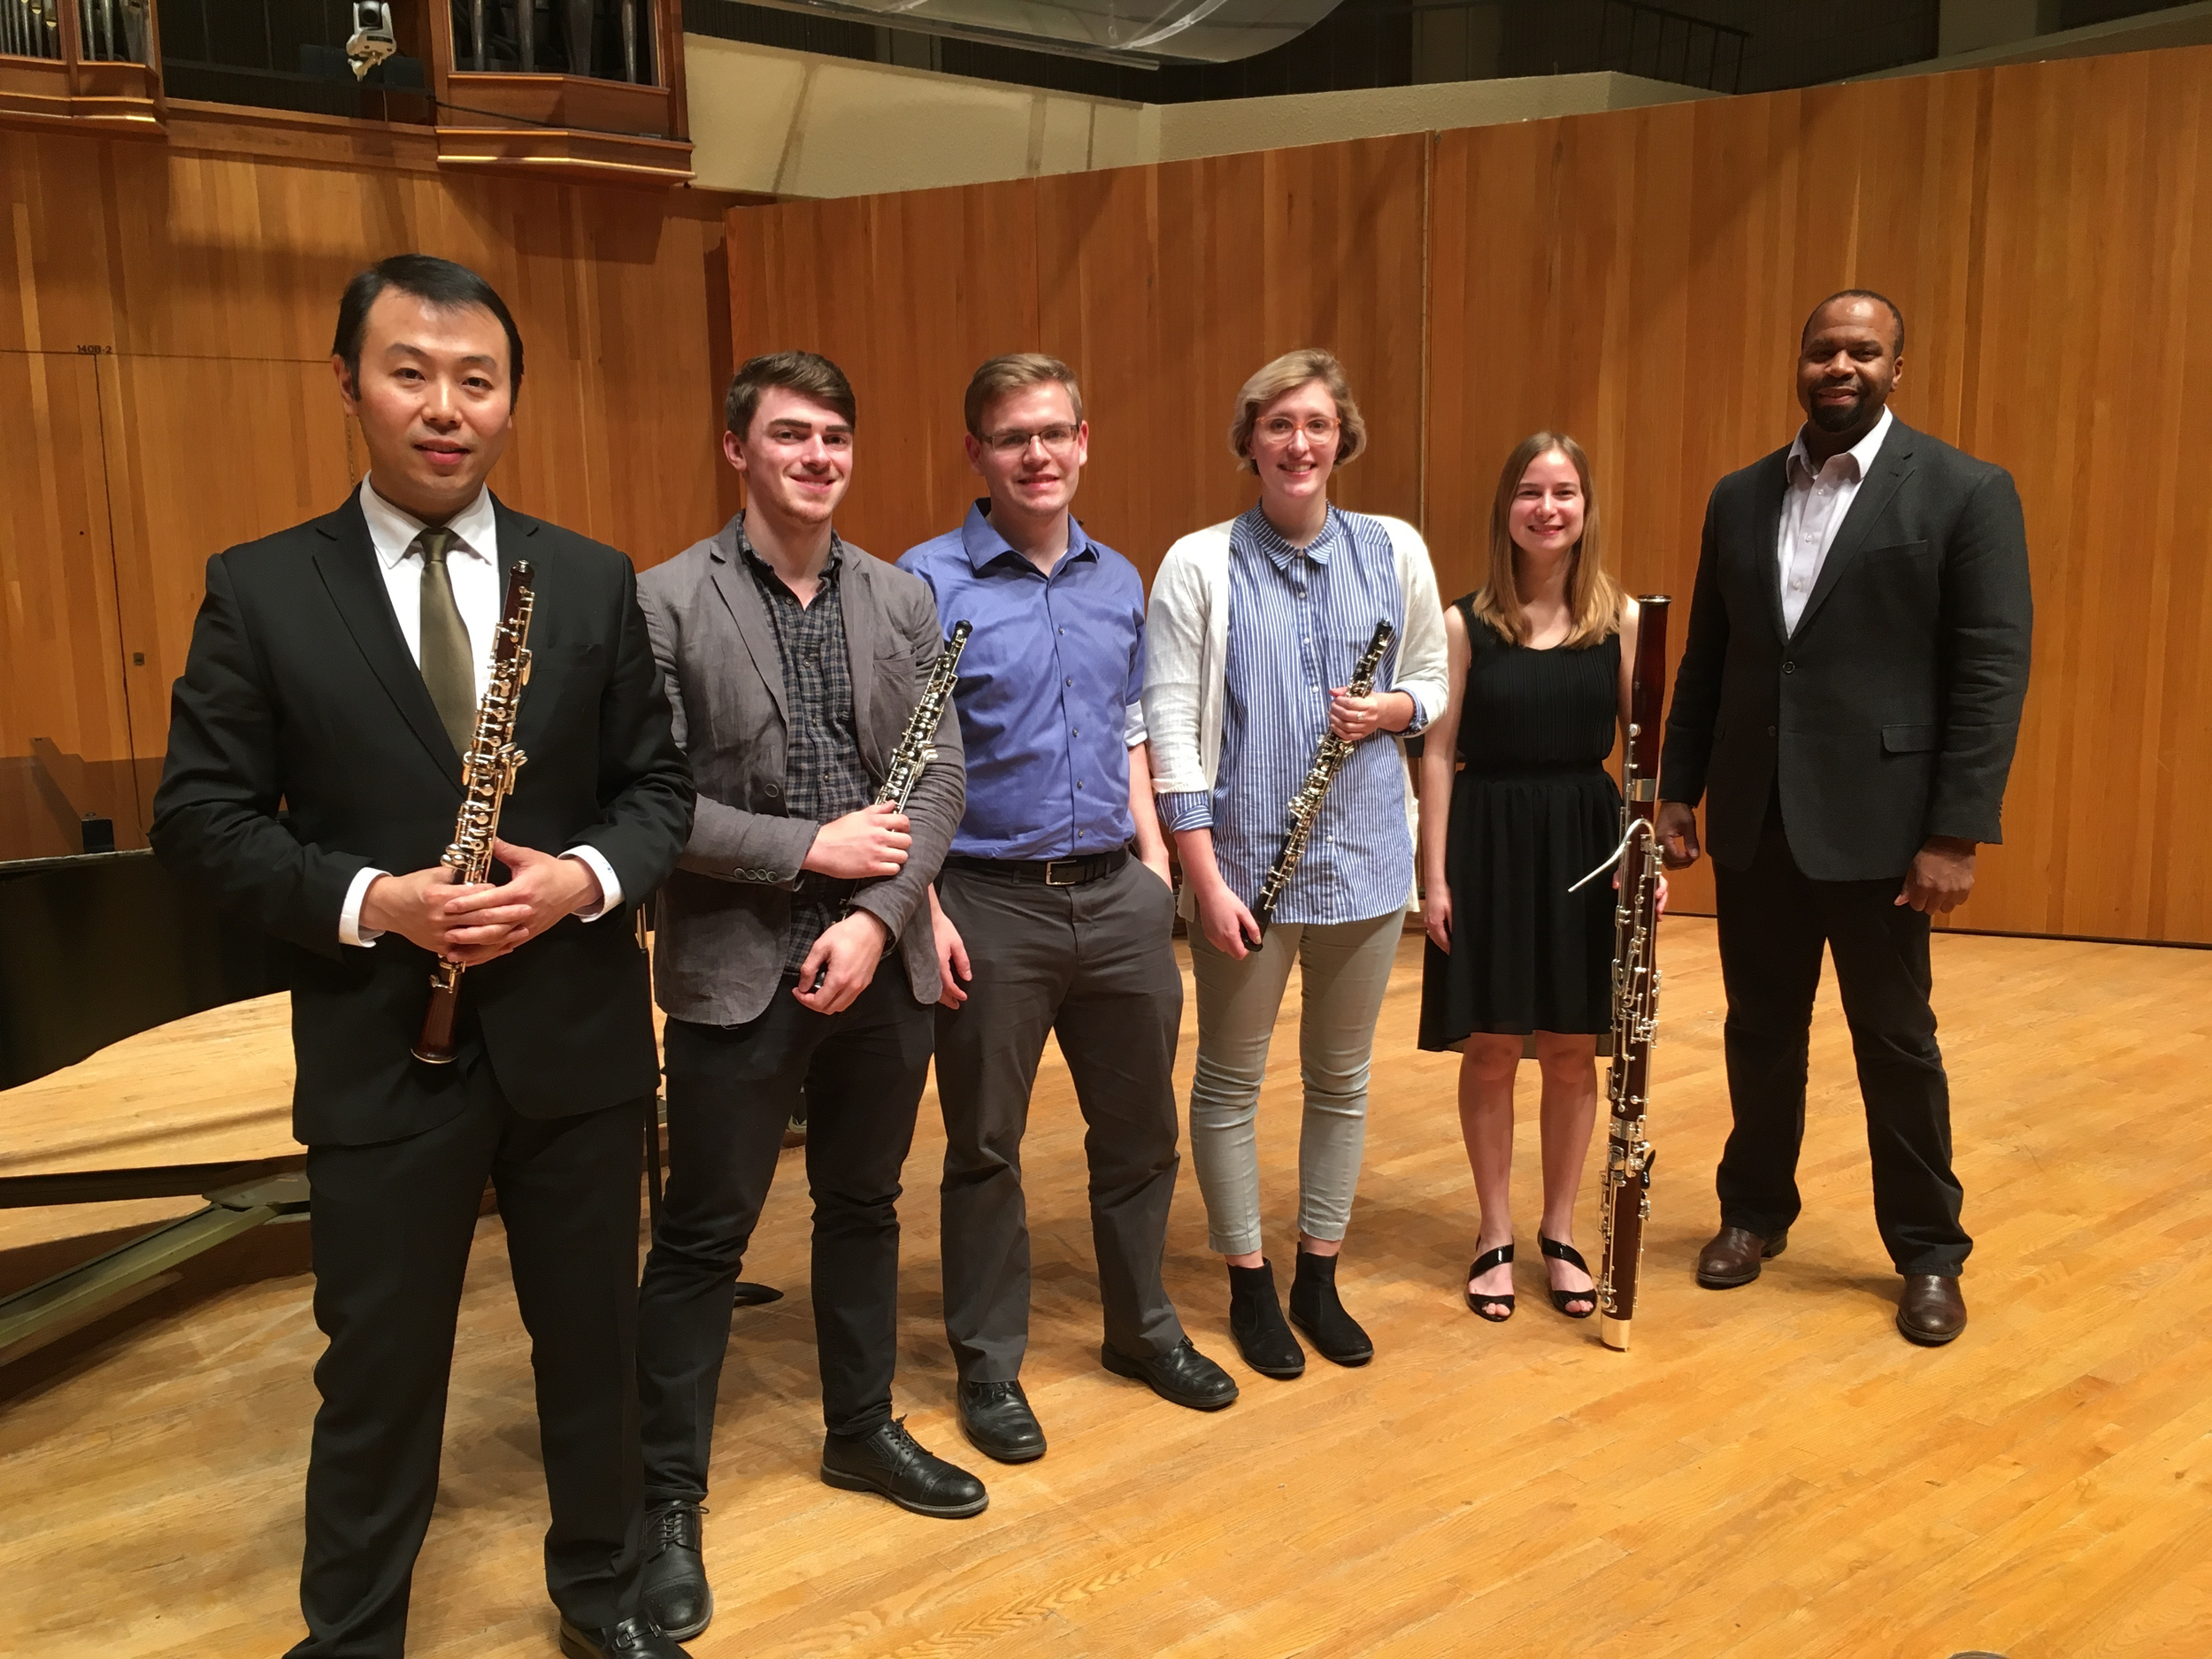 Liang Wang and Bryan Young of the Poulec Trio with Iowa State students in November 2016